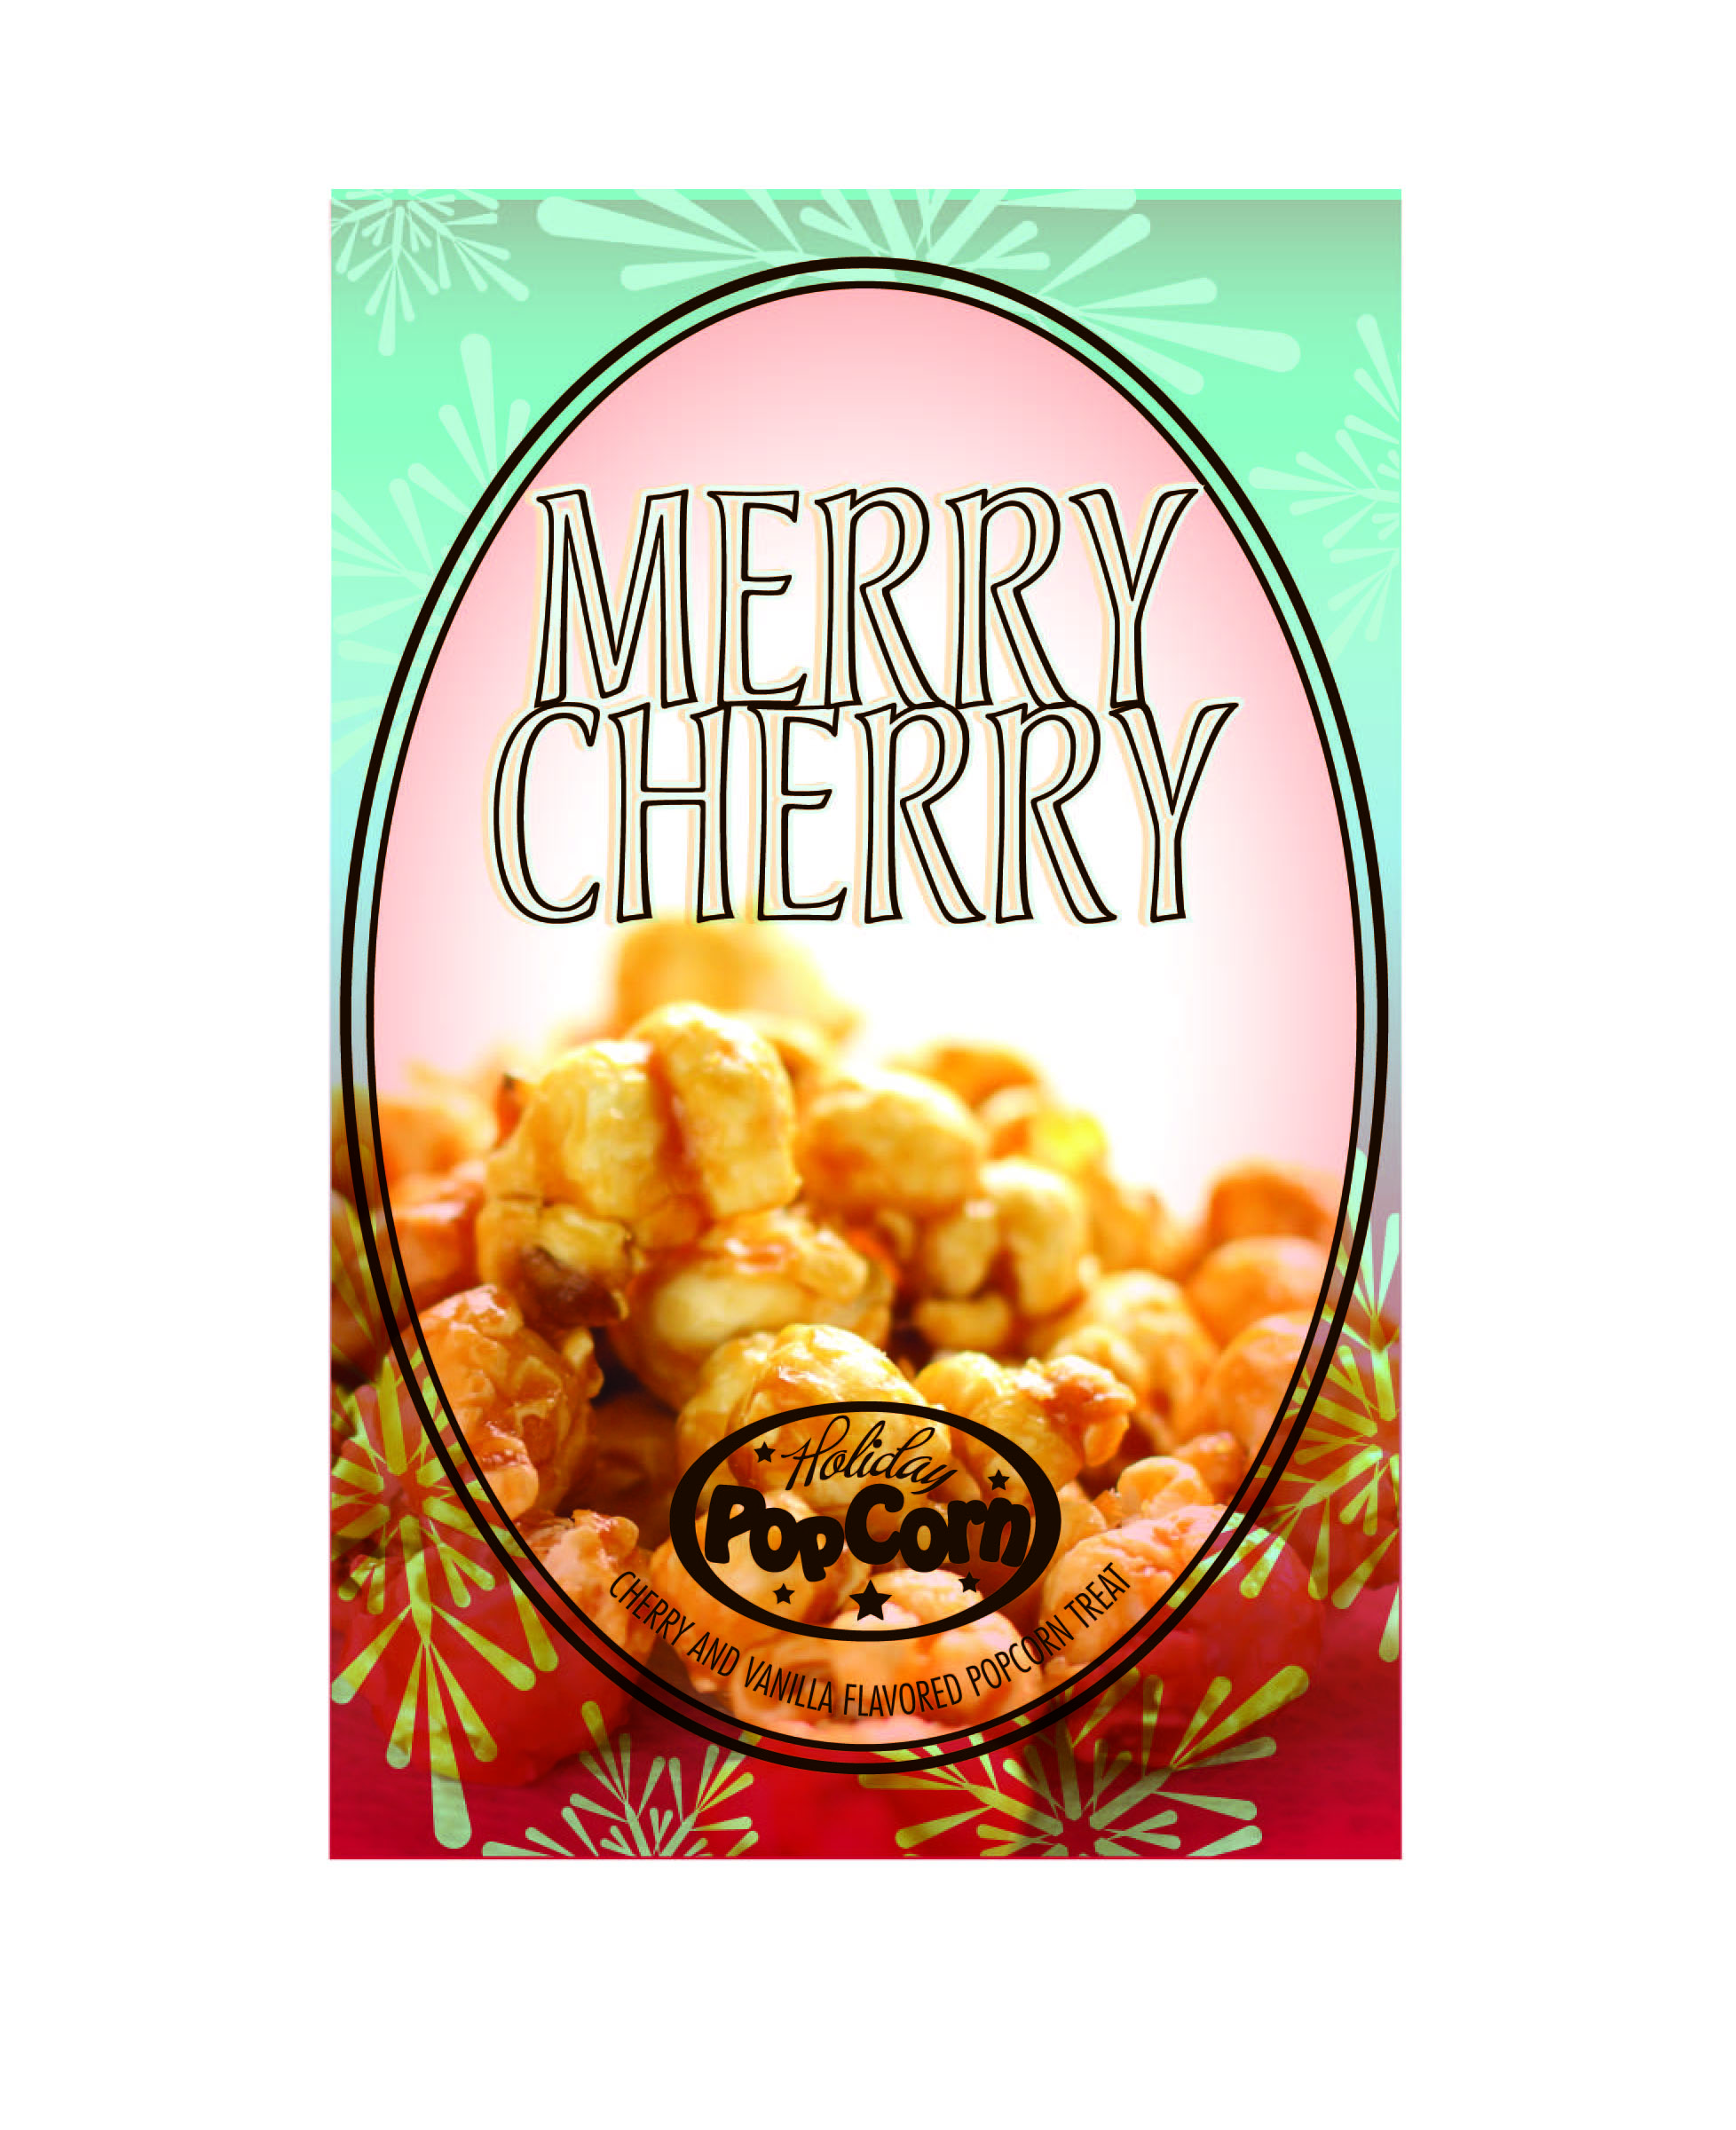 Packaging Design by StayC_ - Entry No. 10 in the Packaging Design Contest Imaginative Packaging Design for Holiday Popcorn.